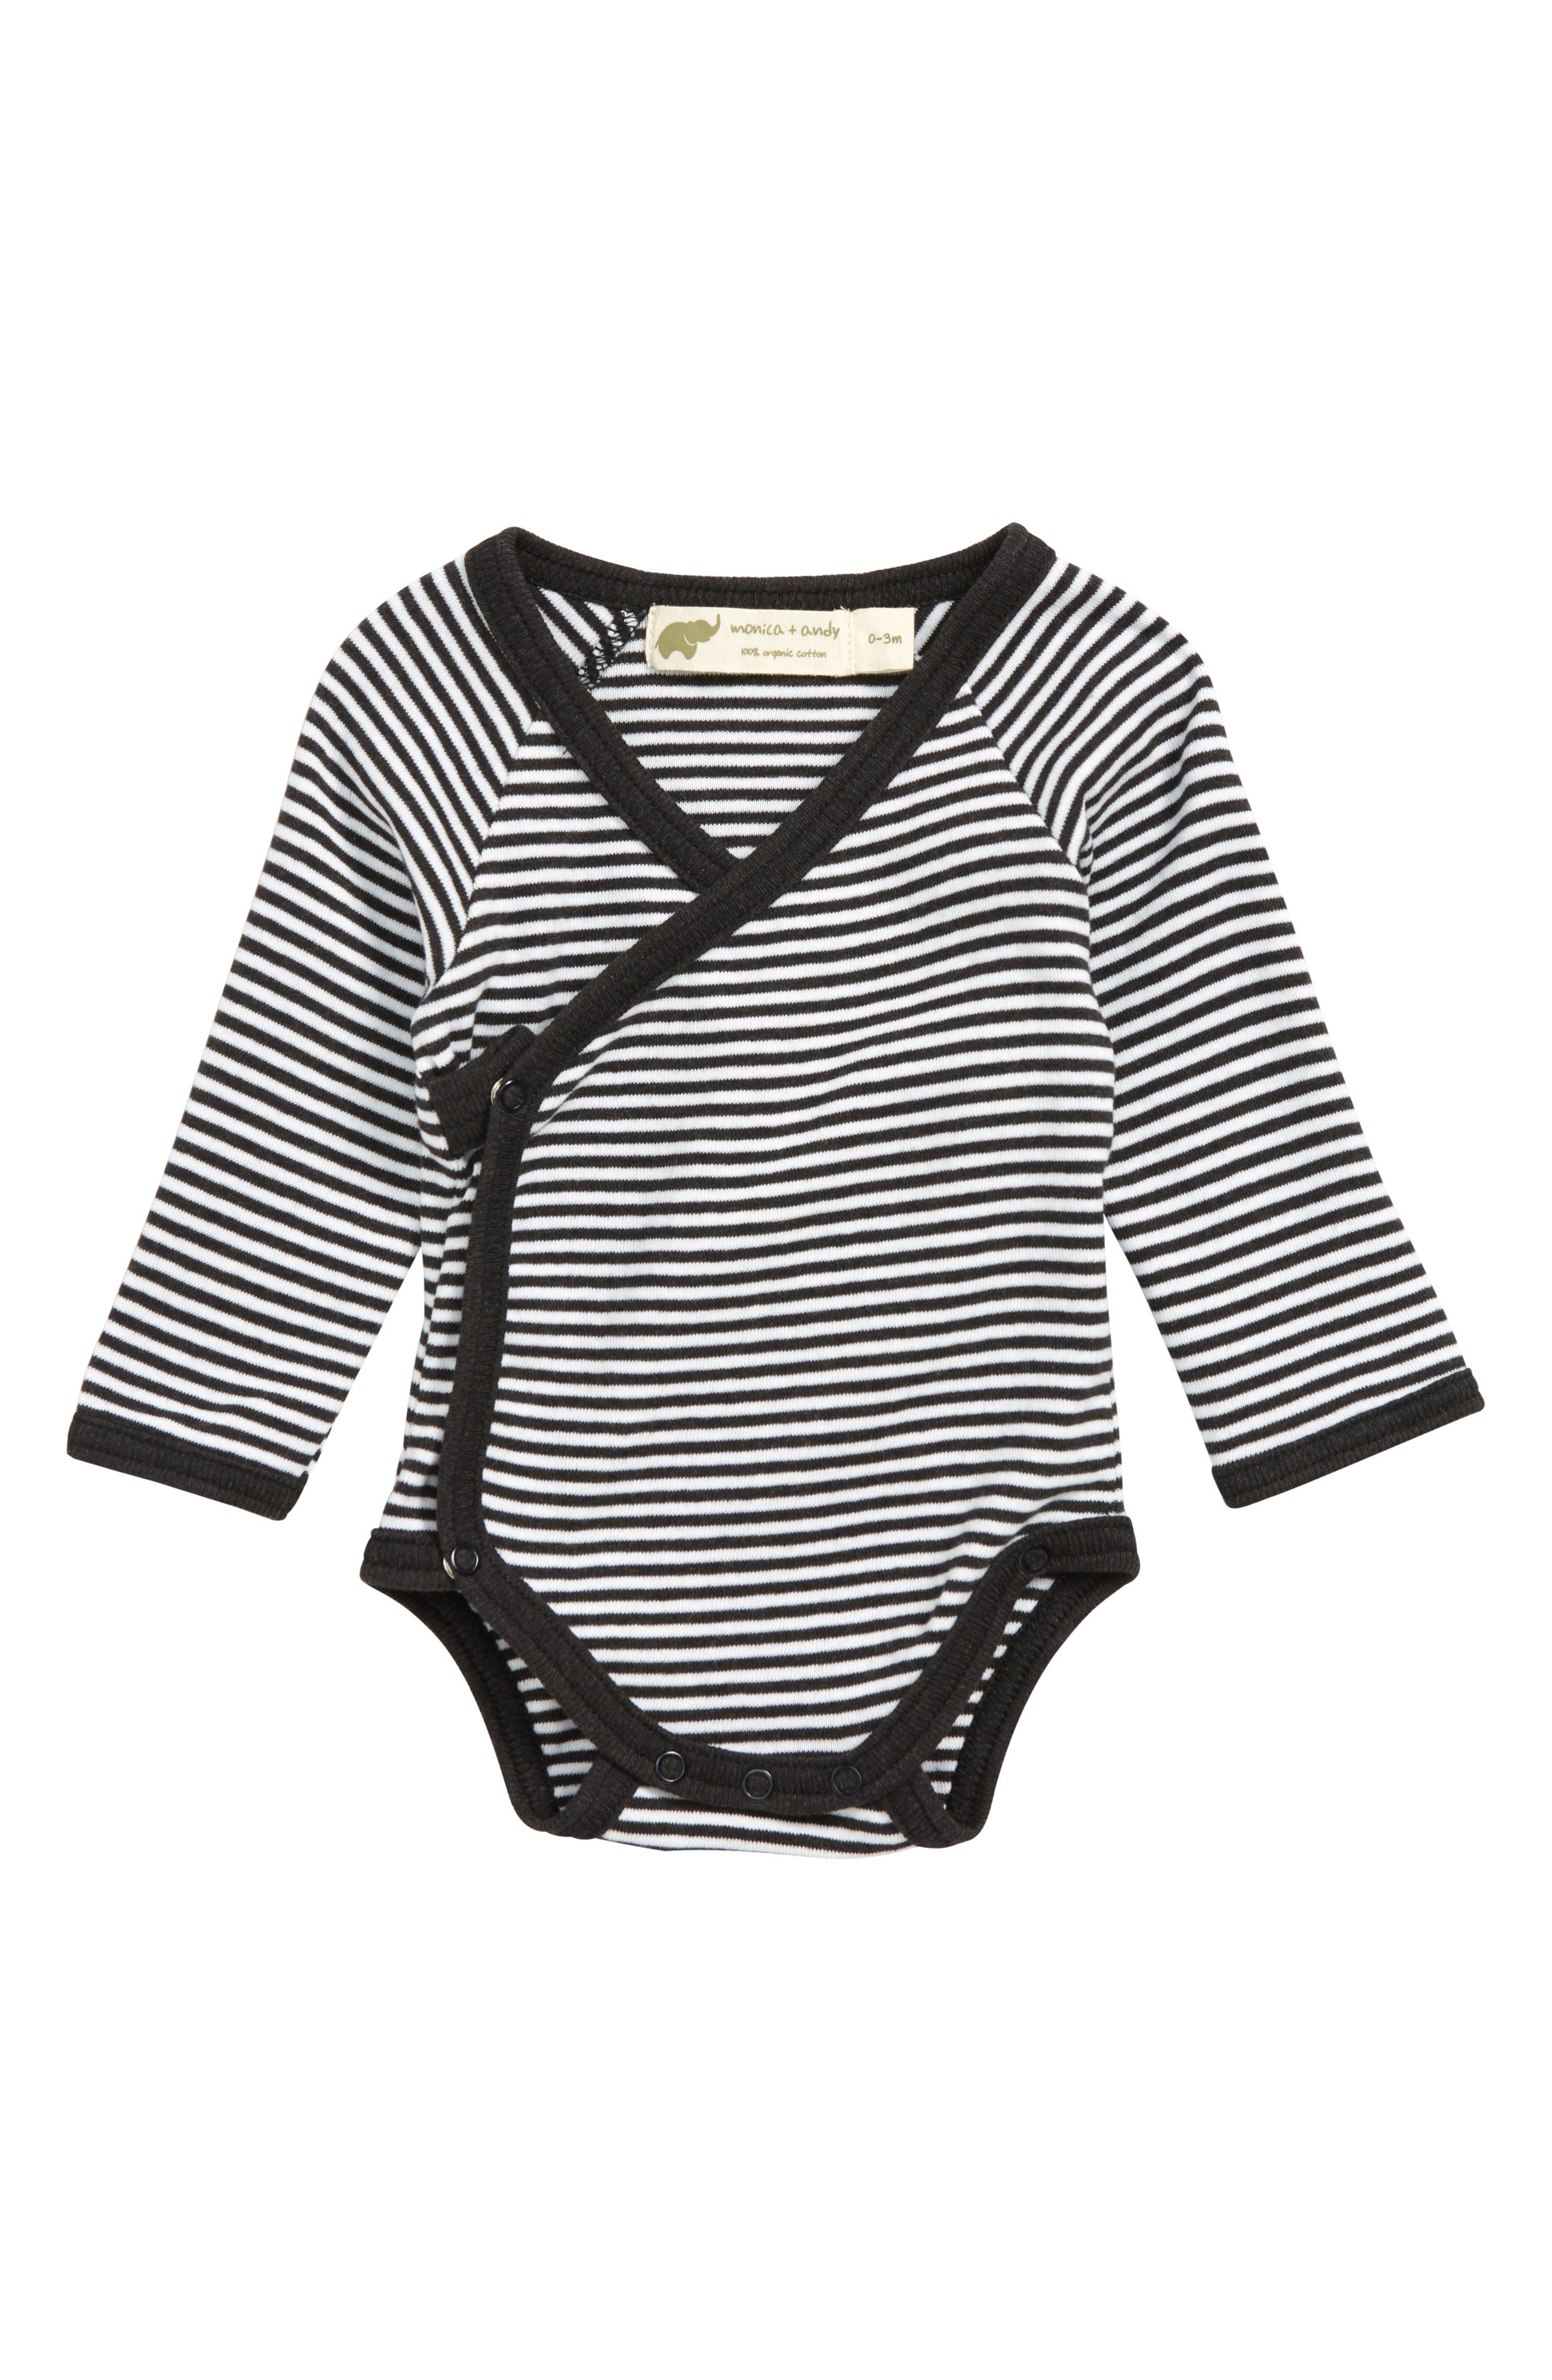 MONICA + ANDY Lucky Organic Cotton Wrap Bodysuit, Main, color, 100